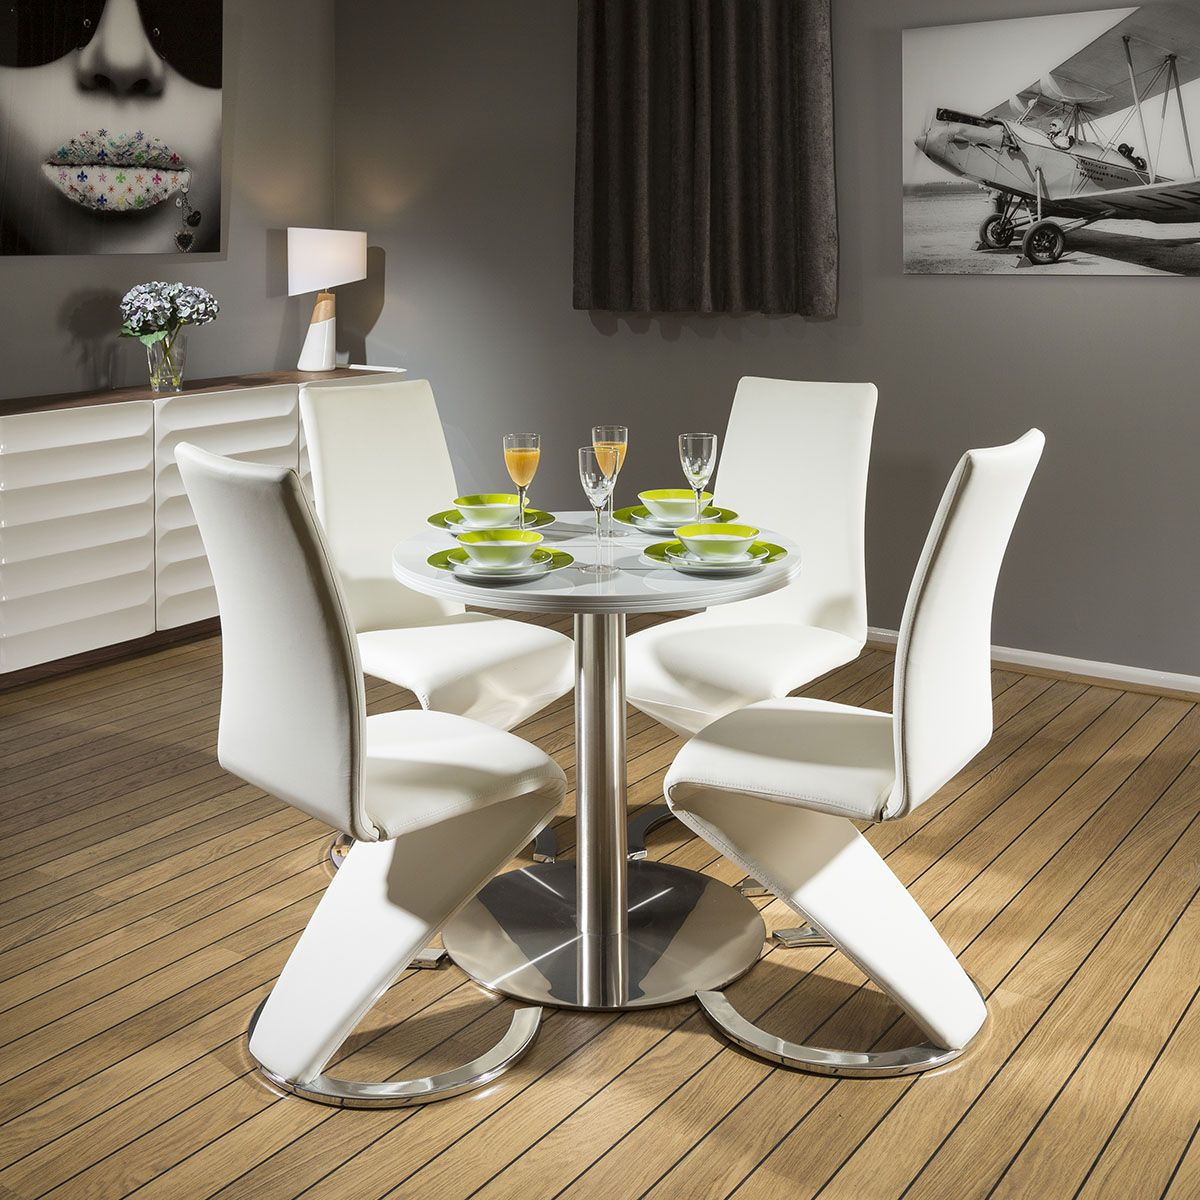 Round Dining Set Grey 80cm Dia Corian Table 4 X White Z Shape